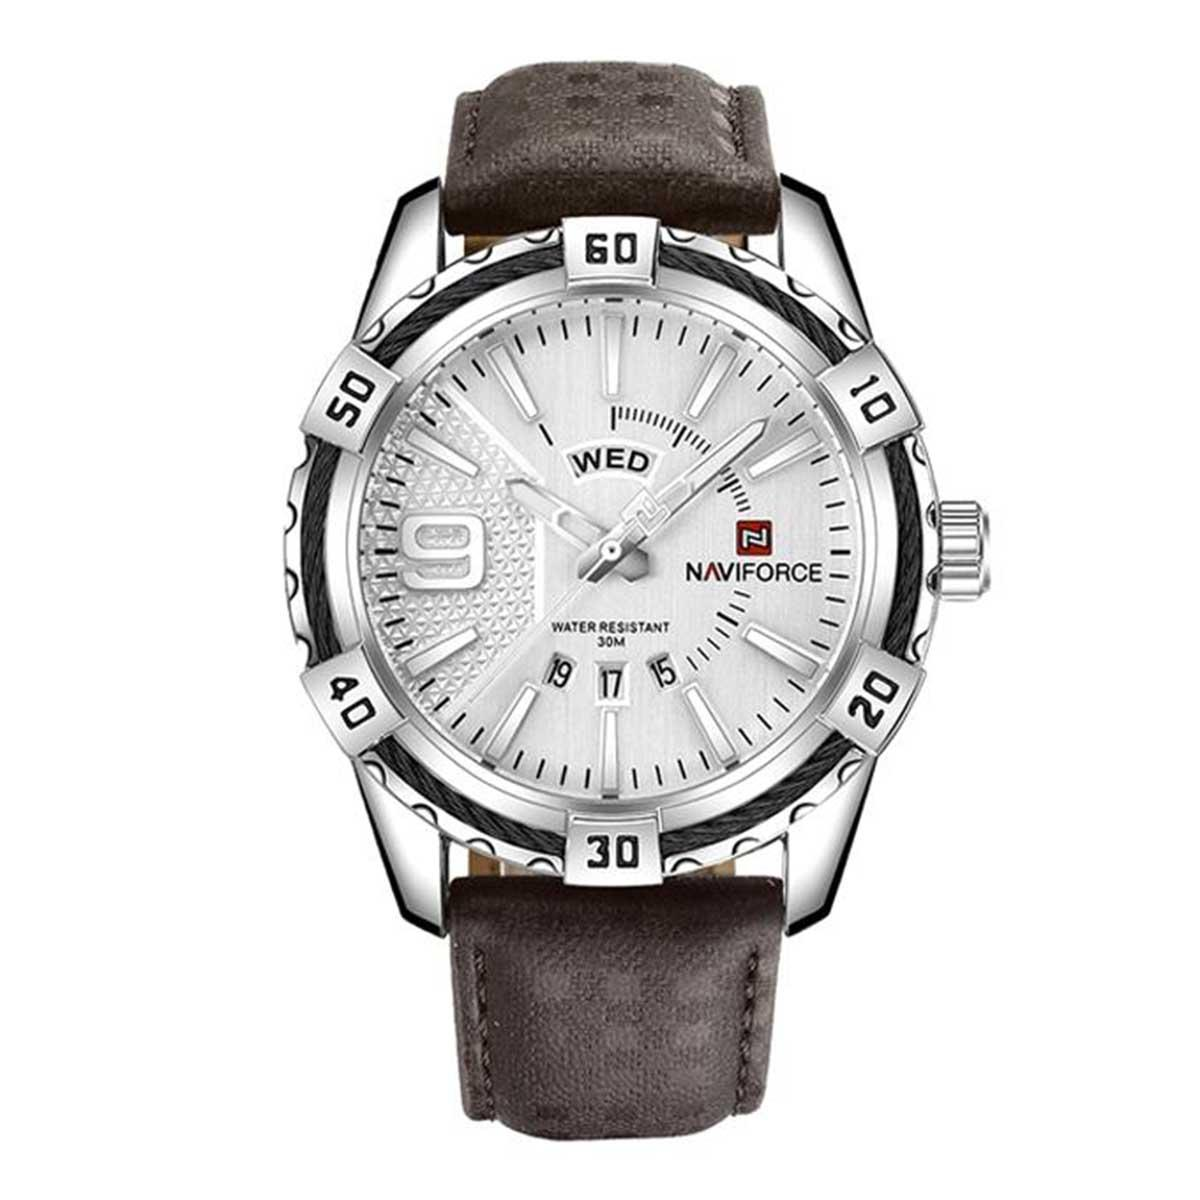 Naviforce NF9117 - Coffee PU Leather Analog Watch for Men - Silver & Coffee